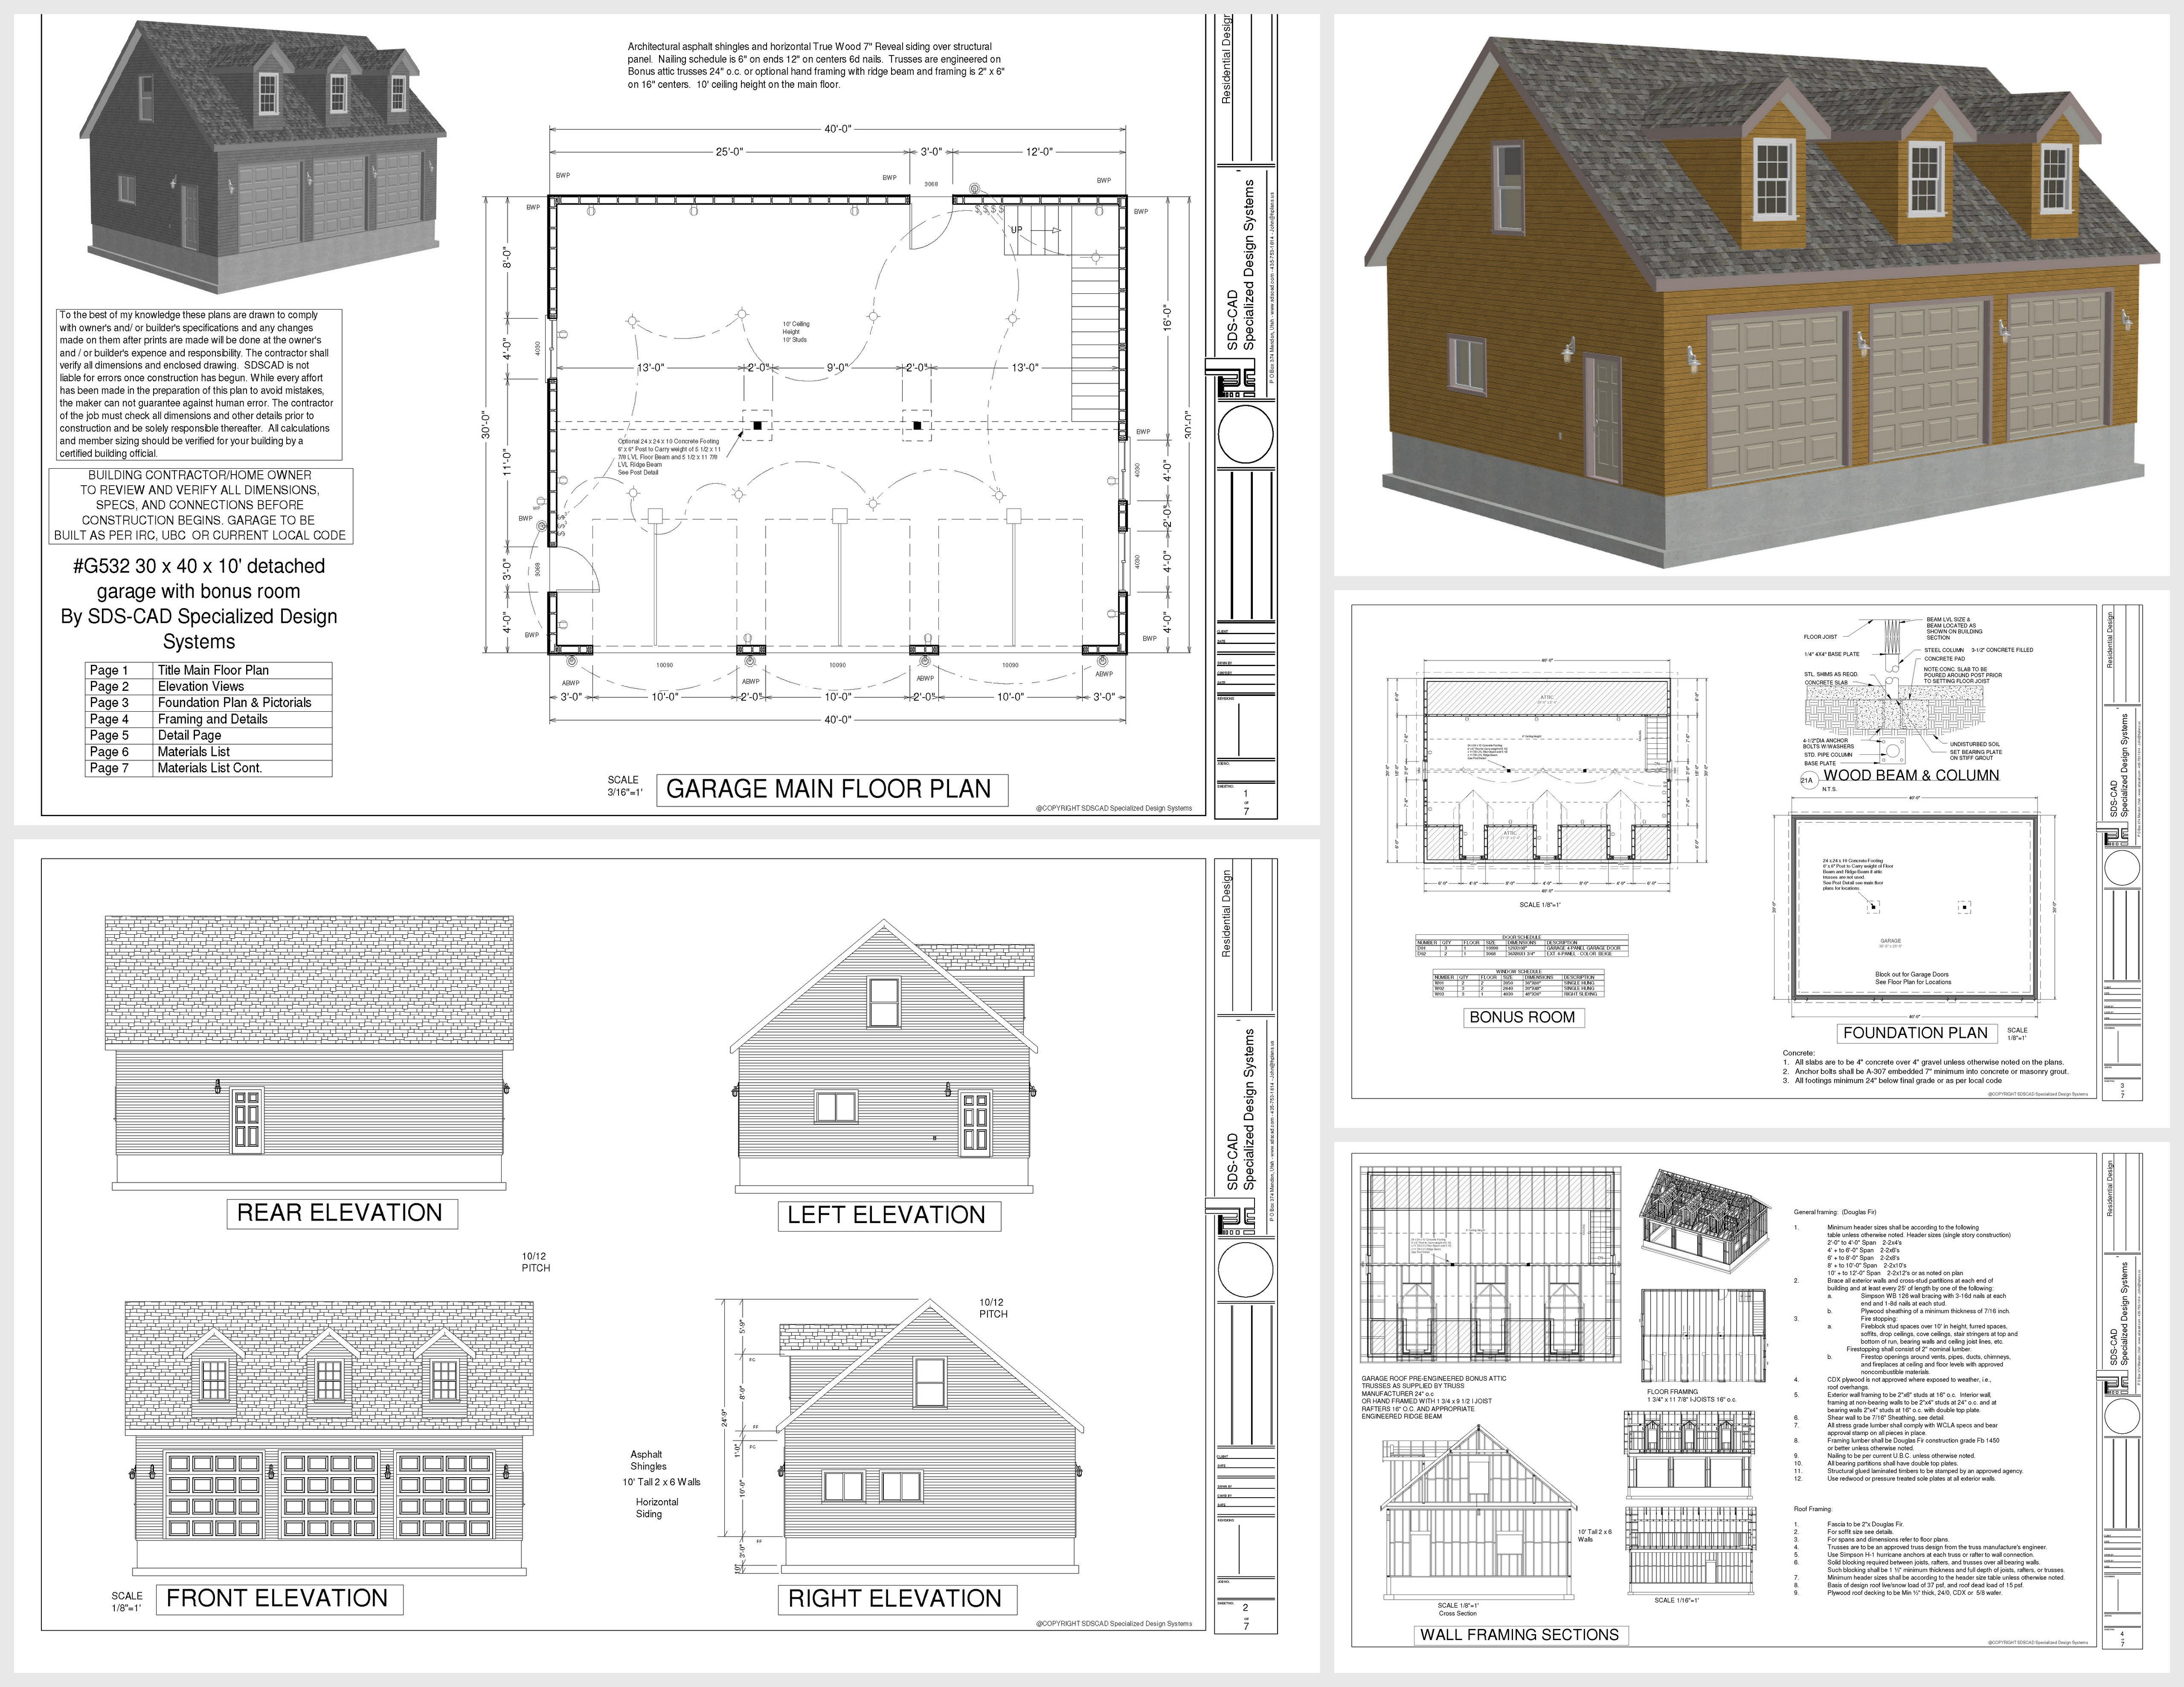 G532 30 x 40 x 10 9 plans for 30 by 40 garage plans